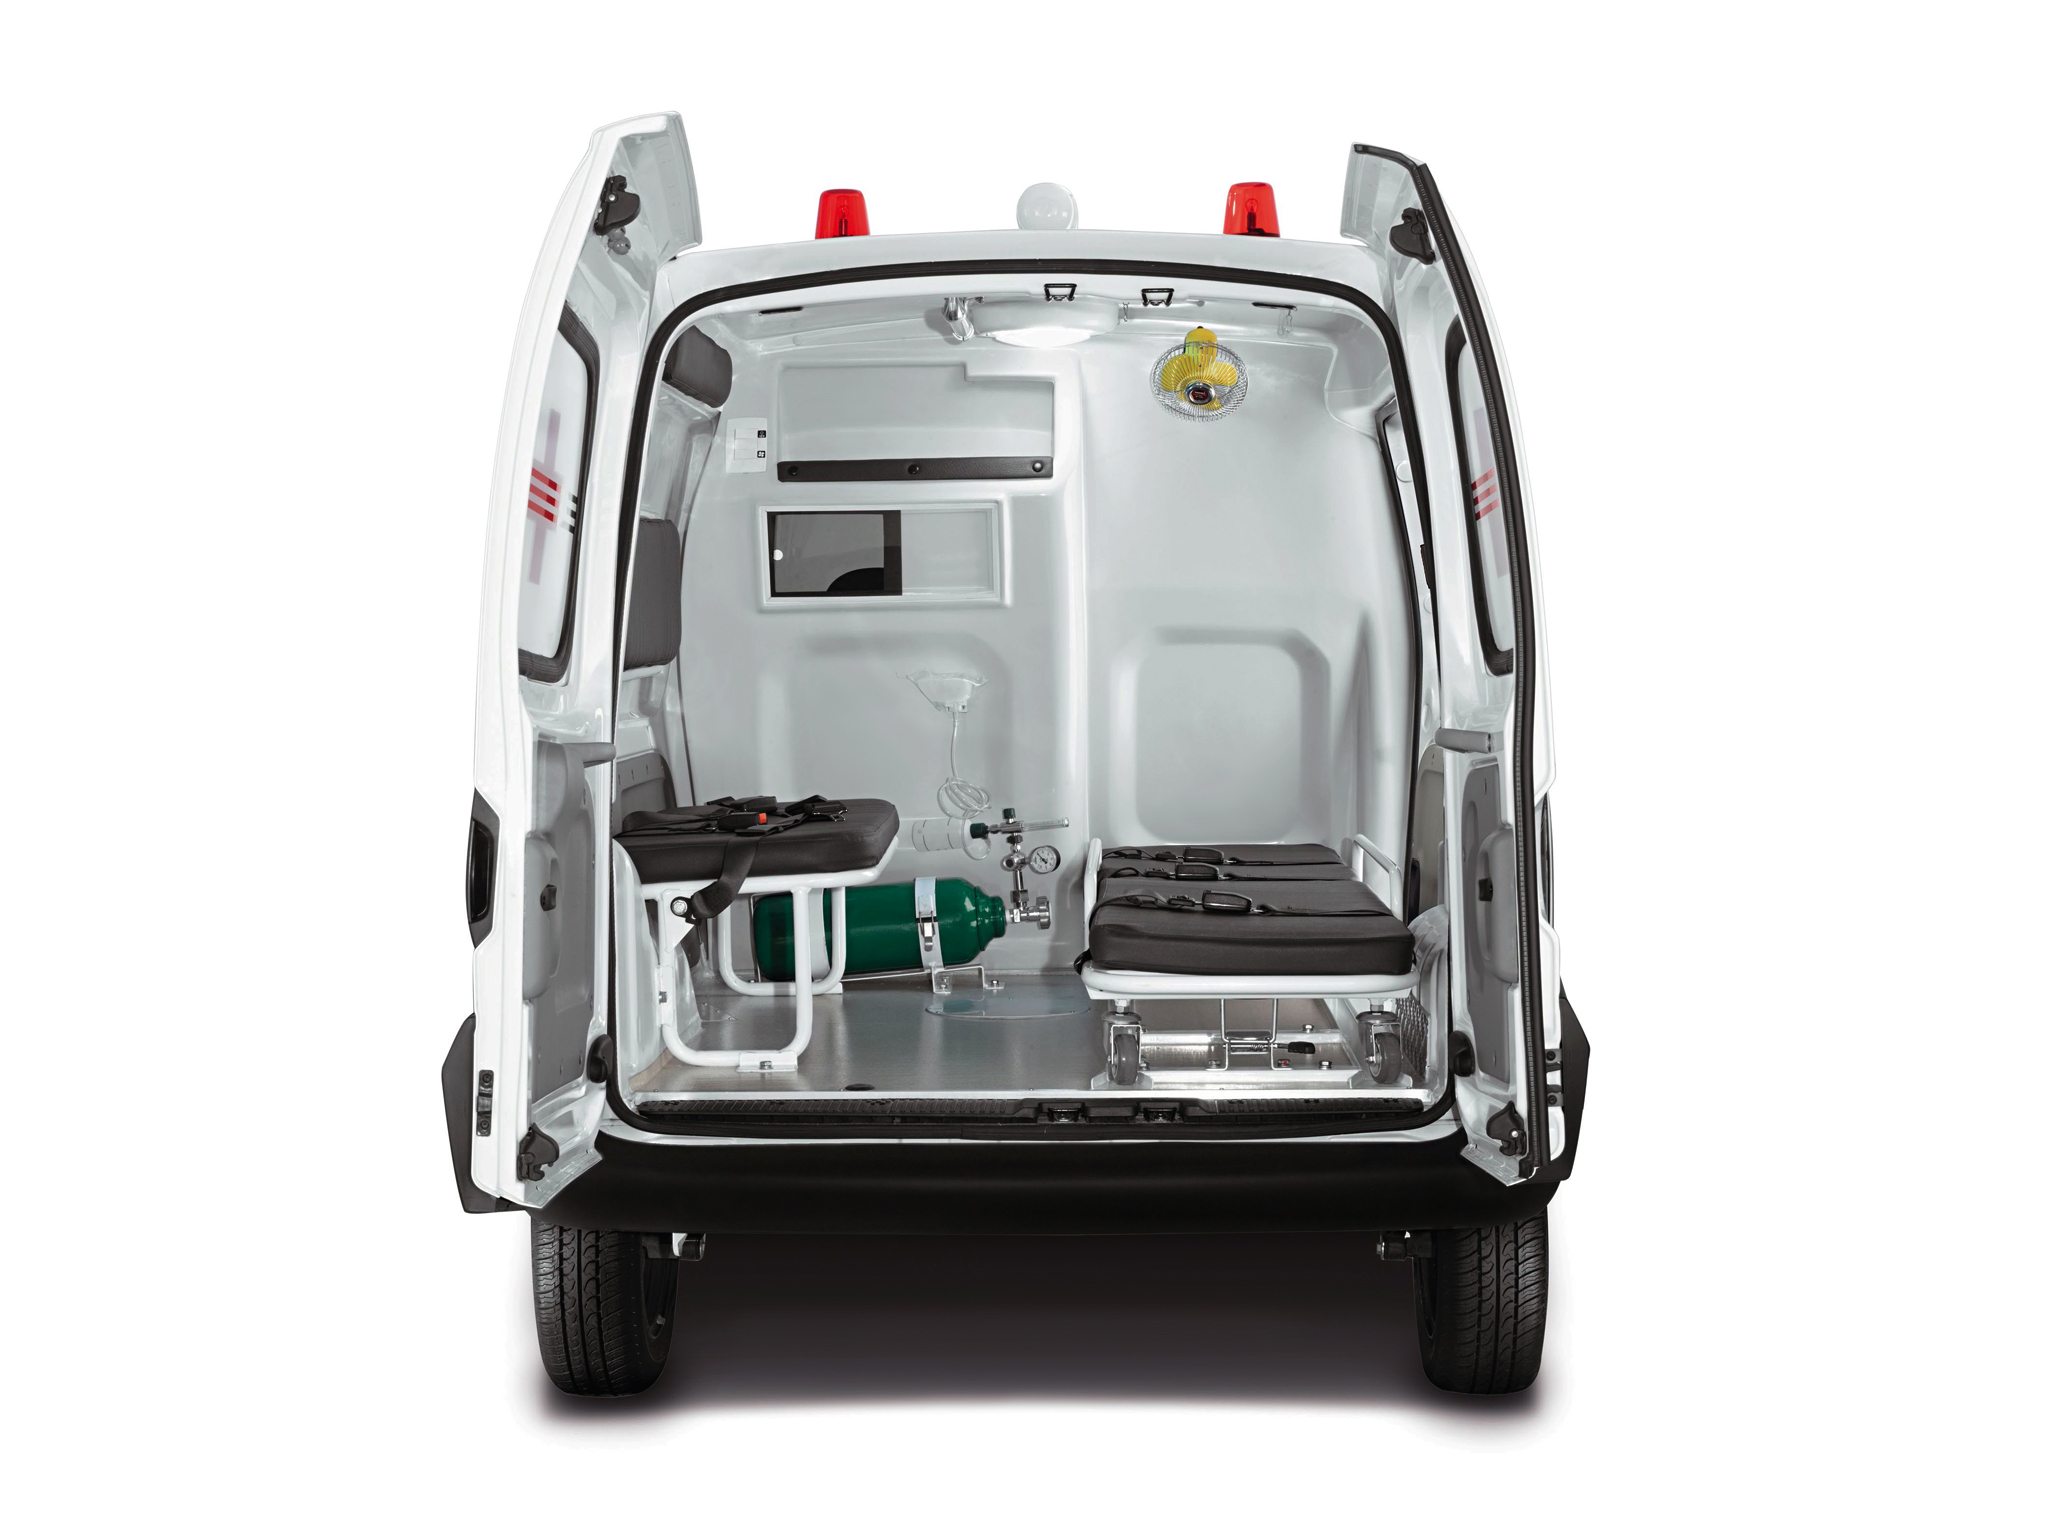 2008 Renault Kangoo Express Ambulancia BR-spec ambulance emergency